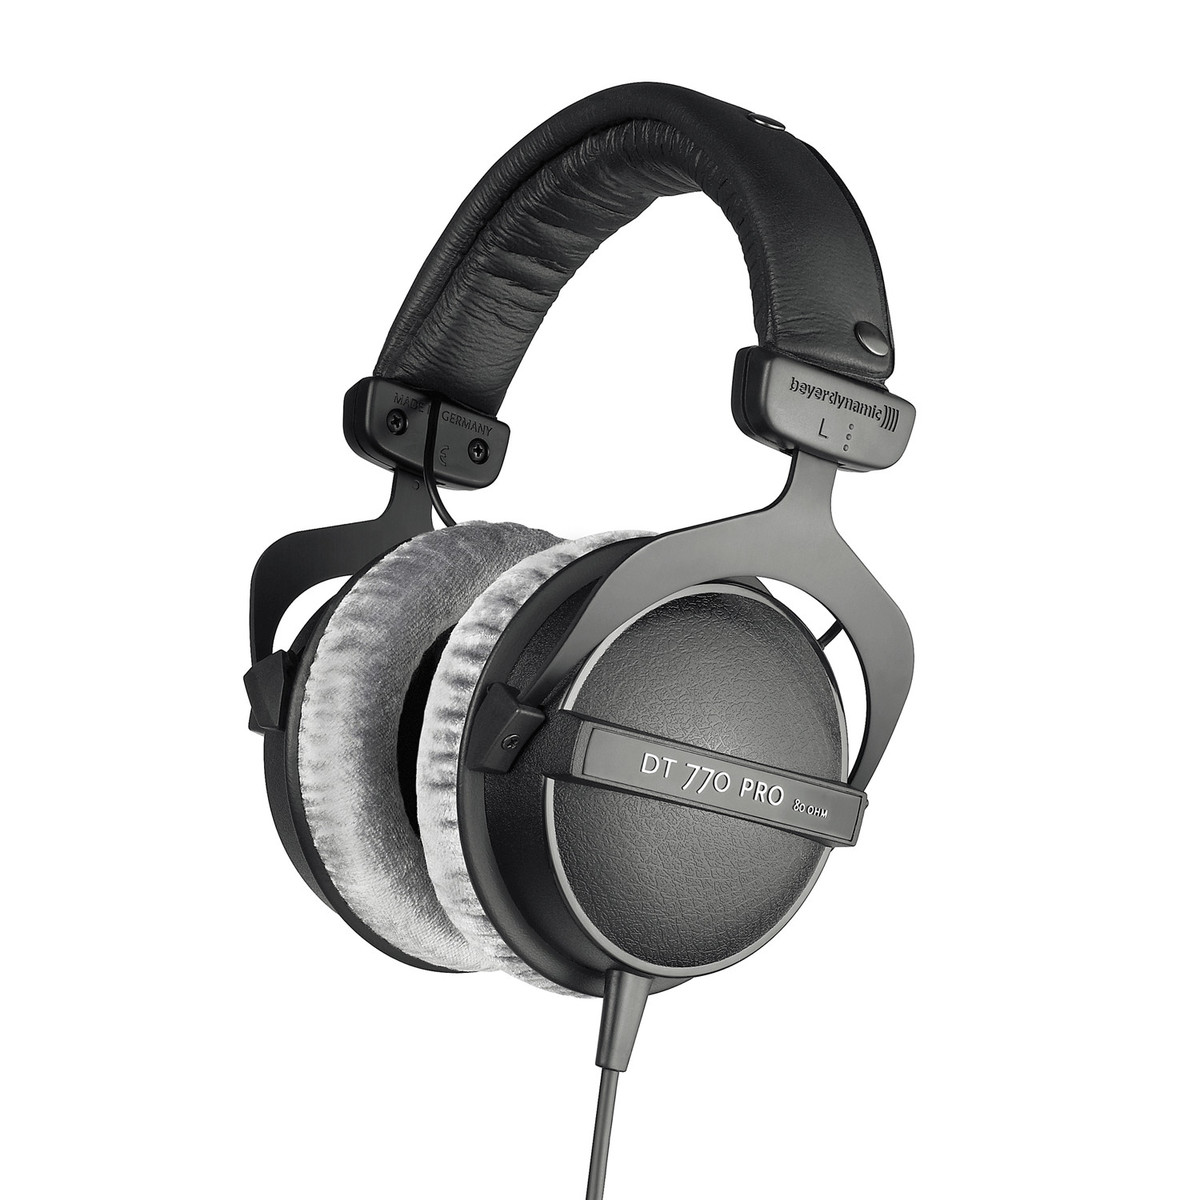 beyerdynamic dt 770 pro headphones 80 ohm at gear4music. Black Bedroom Furniture Sets. Home Design Ideas